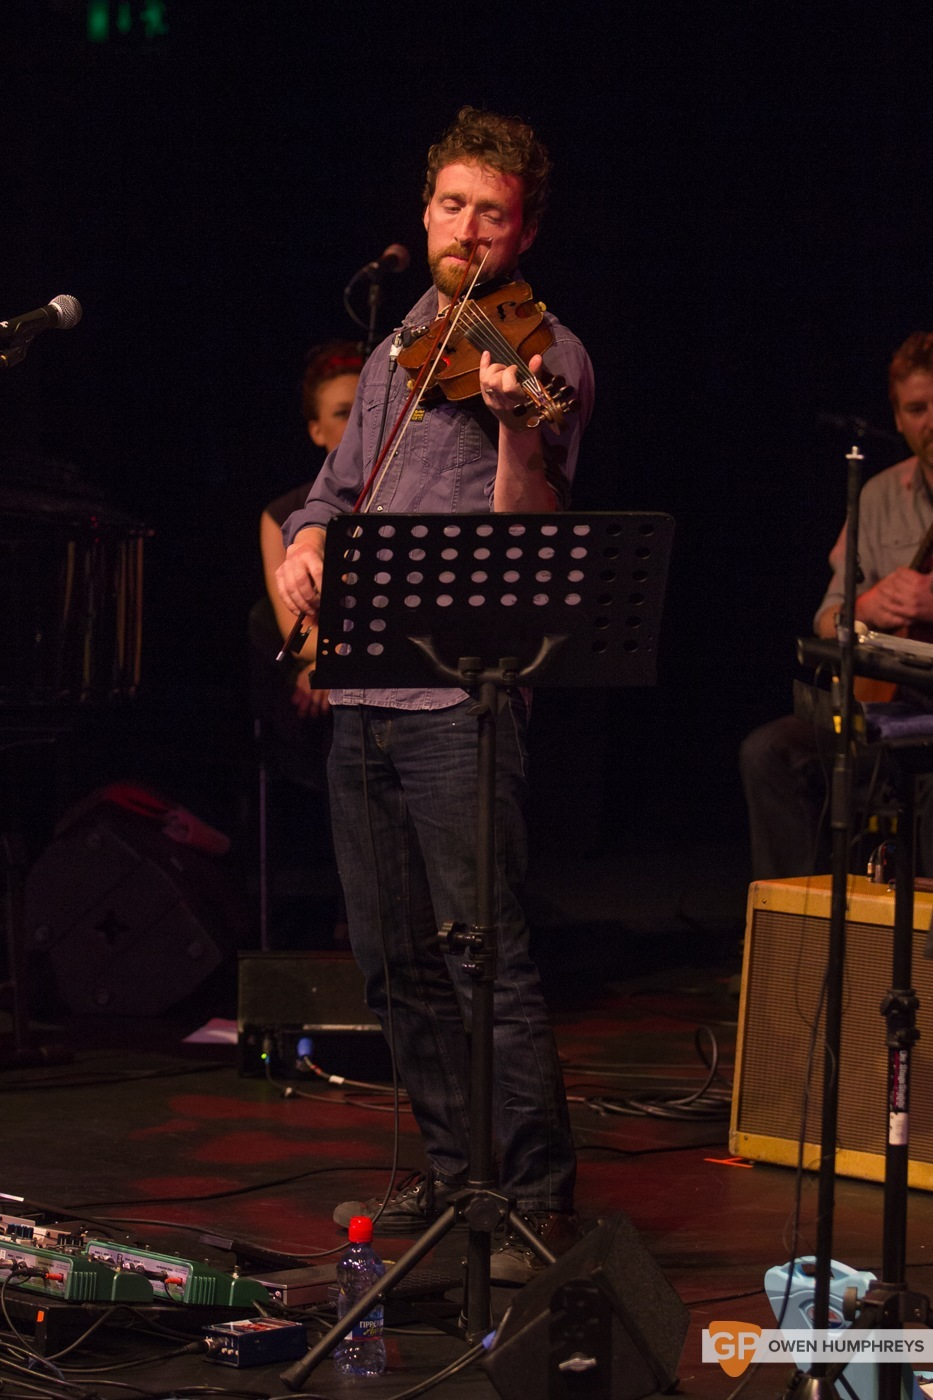 Colm Mac Con Iomaire at The Pavilion Theatre by Owen Humphreys (10 of 12)